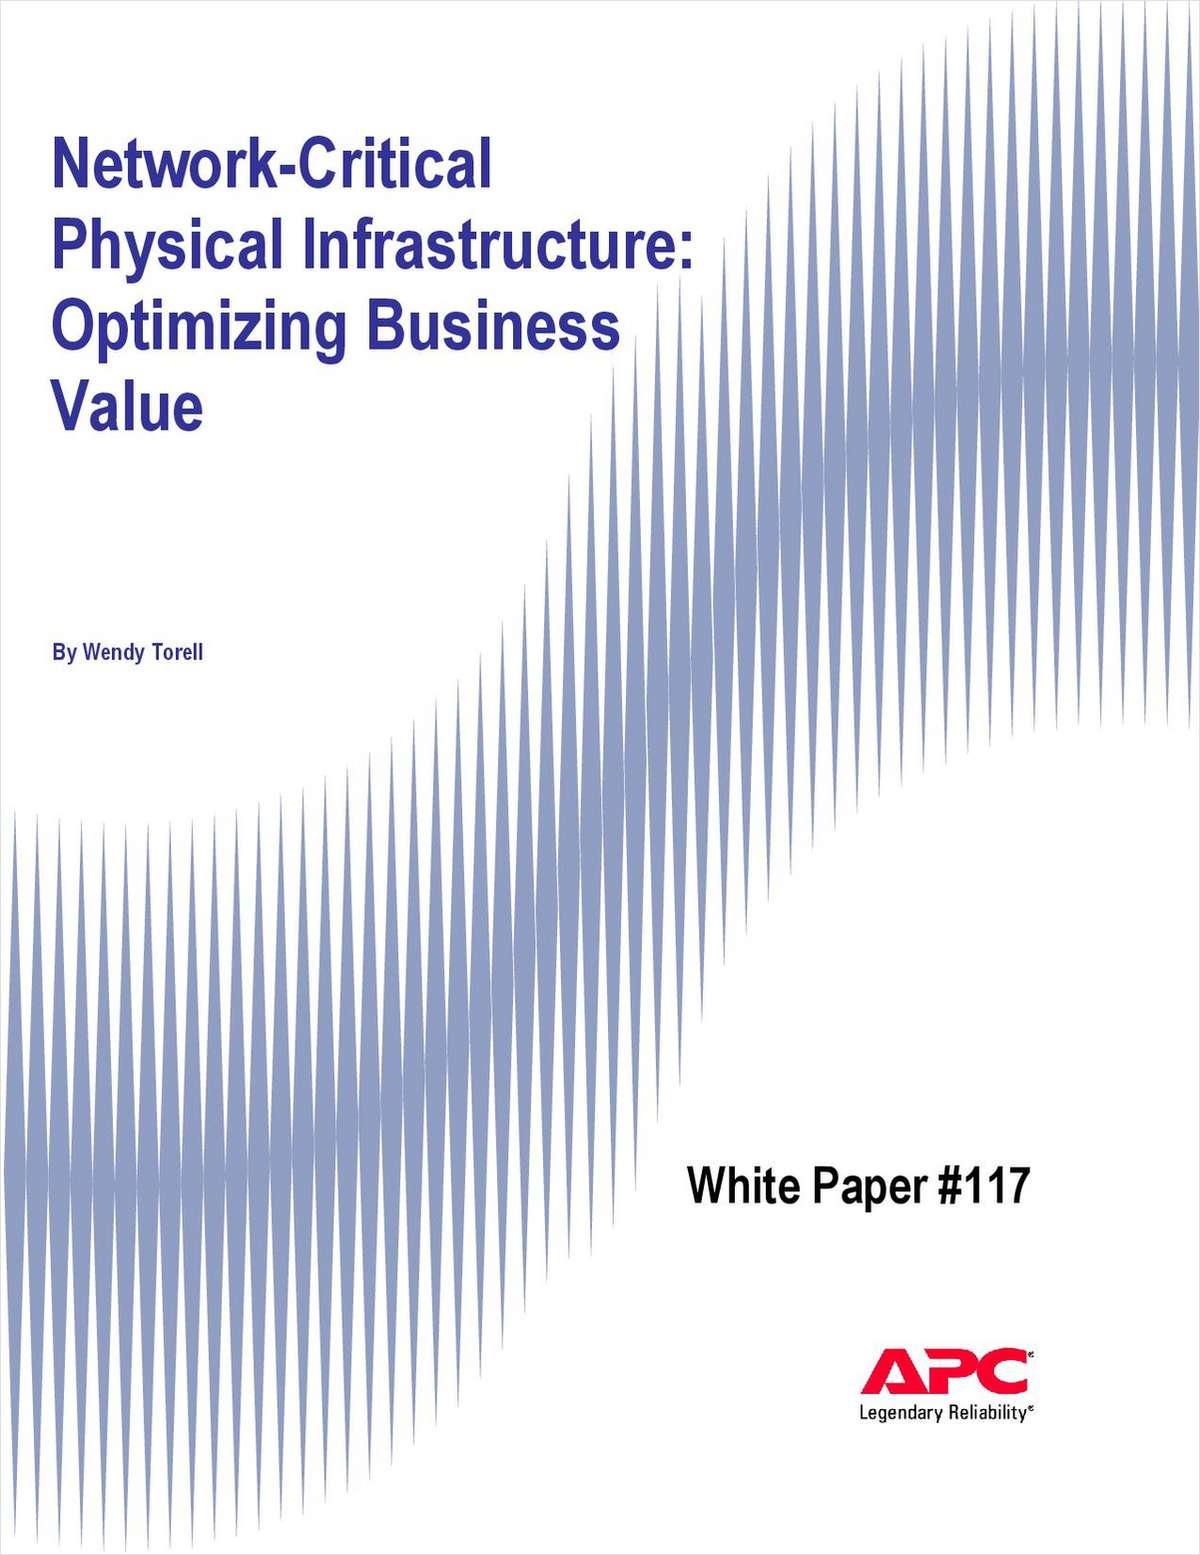 Network-Critical Physical Infrastructure: Optimizing Business Value